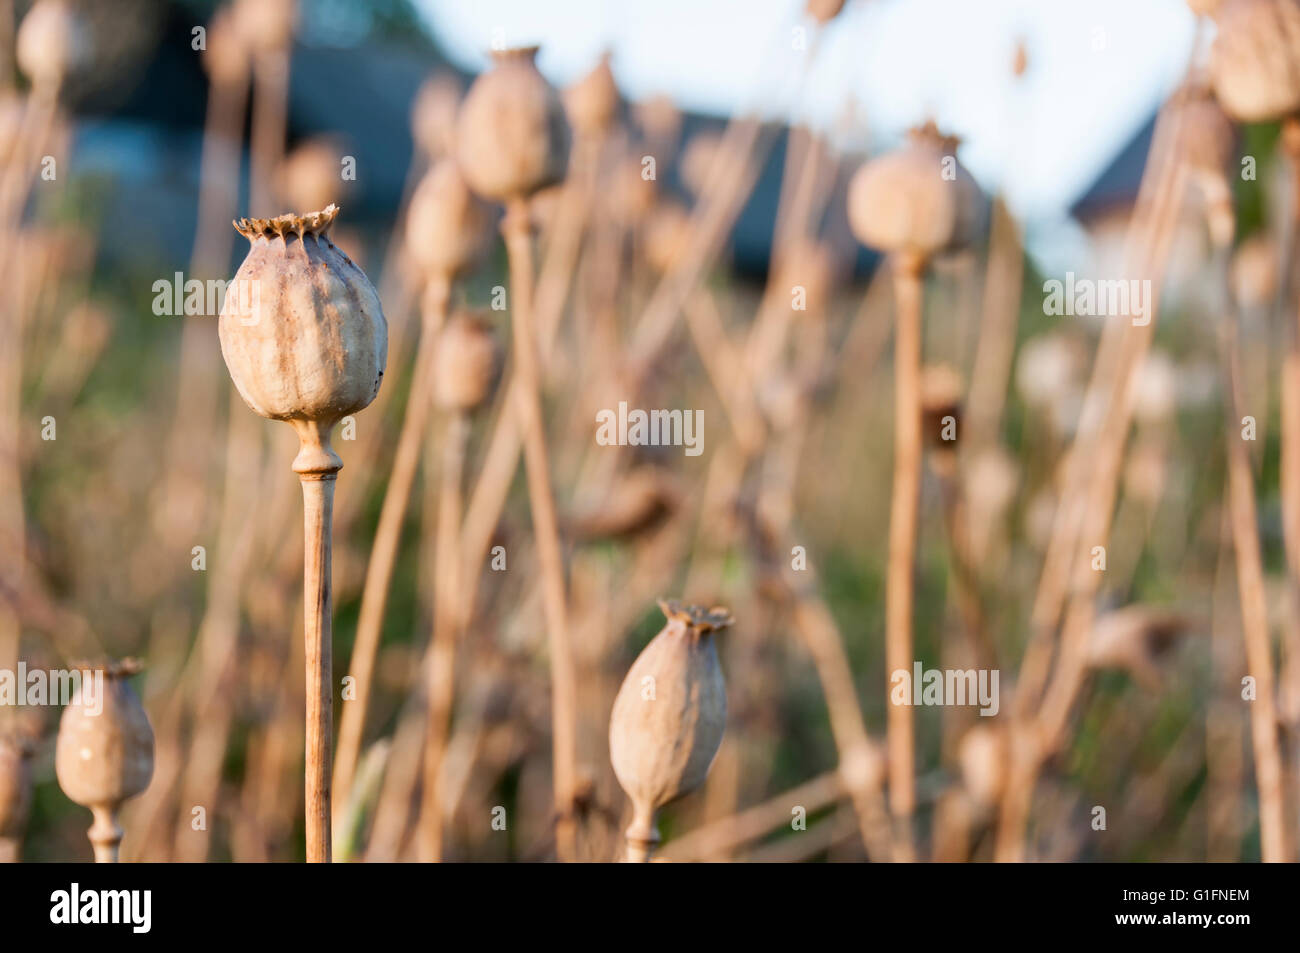 Poppy heads on field at rural farm - Stock Image